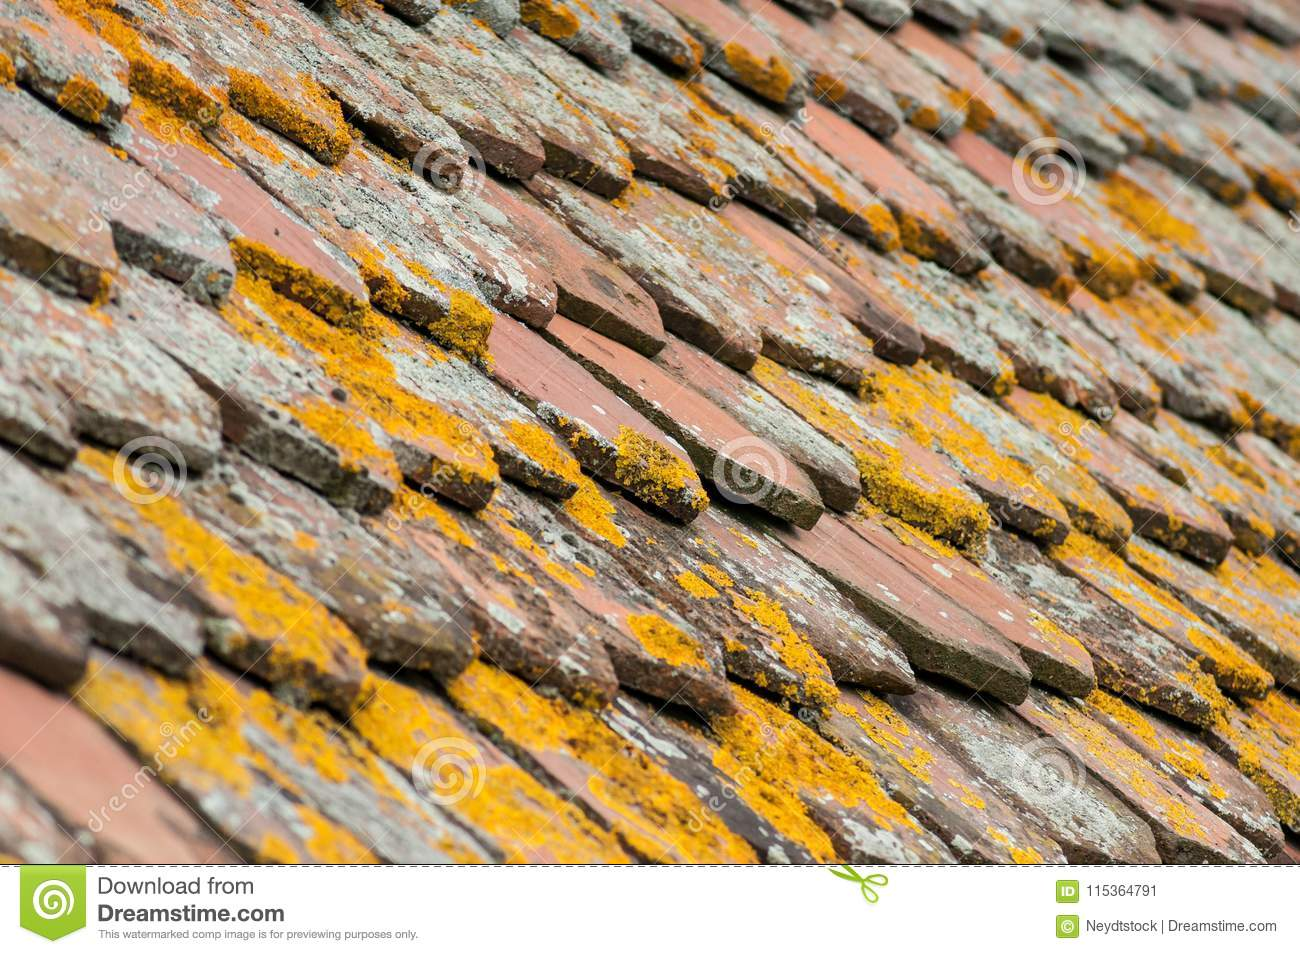 Lichen On Terra Cotta Tiles On Roof Stock Image - Image of roof